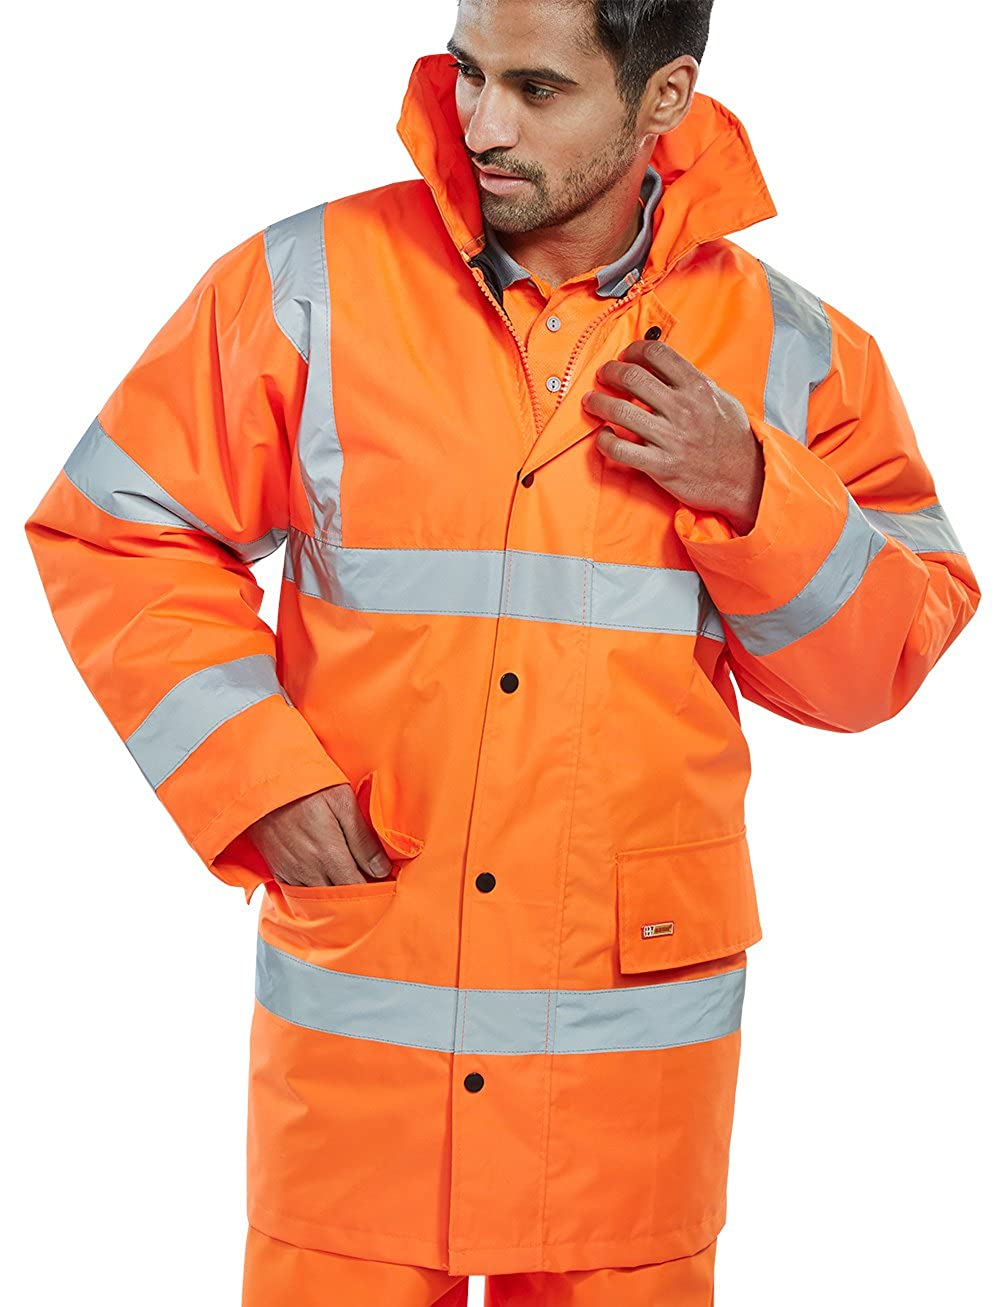 B Seen Constructor Hi Vis Traffic Jacket B-Seen